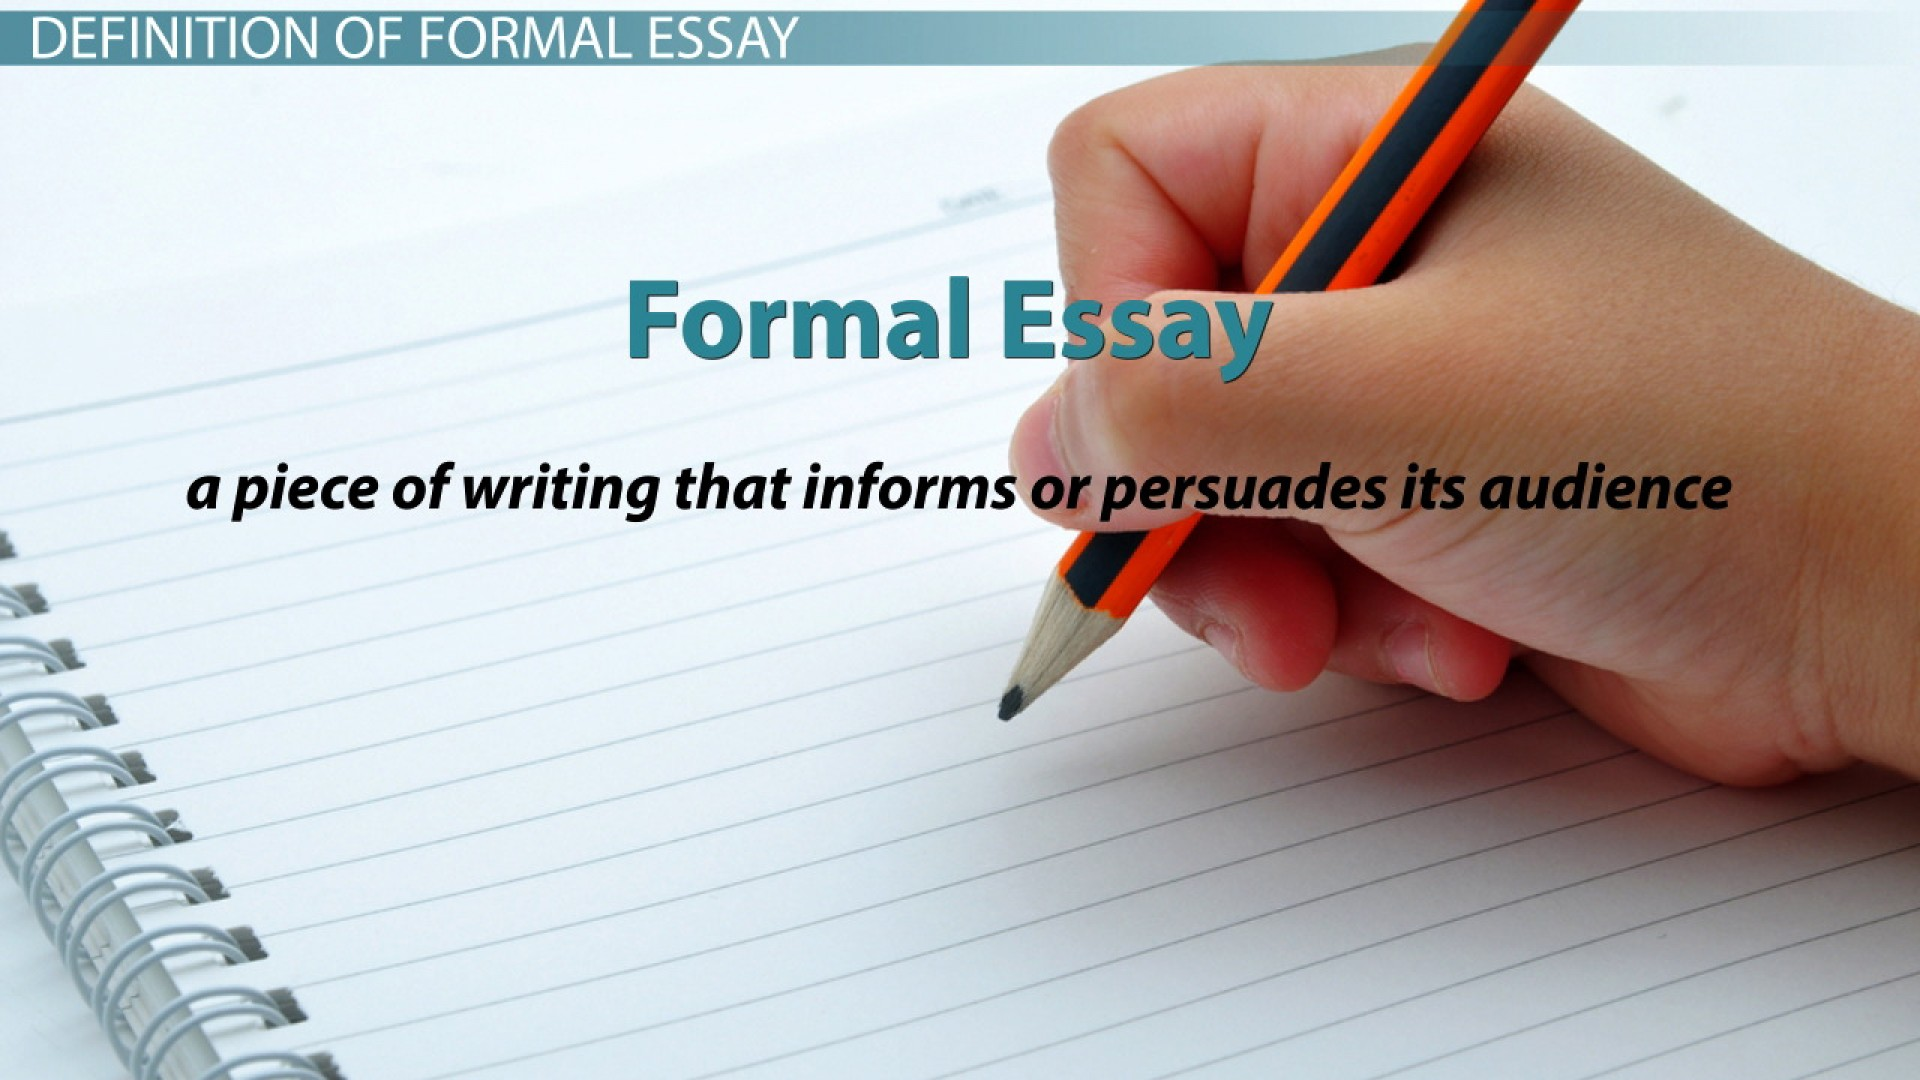 001 Essay Example Formal Meaning  Definition Examples 111863 Unforgettable And In Urdu Hindi1920